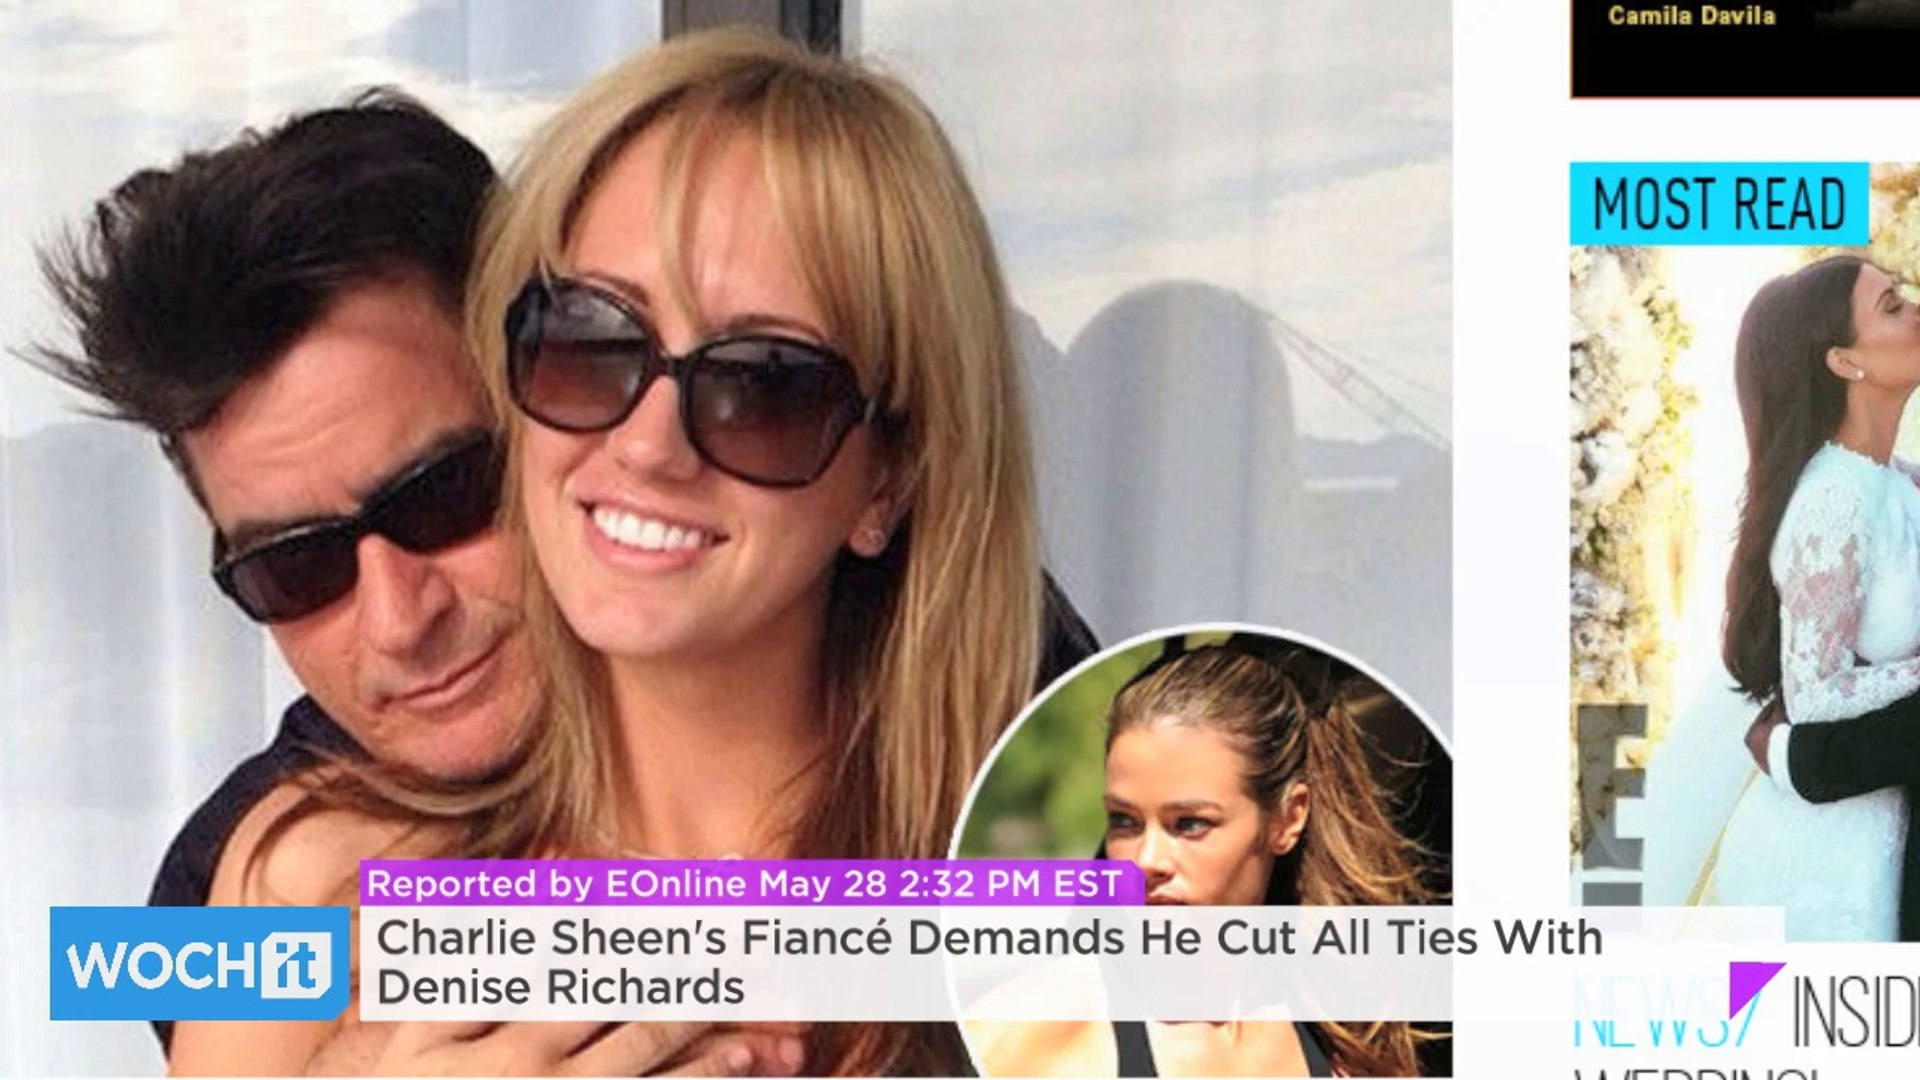 Charlie Sheen's Fiancé Demands He Cut All Ties With Denise Richards